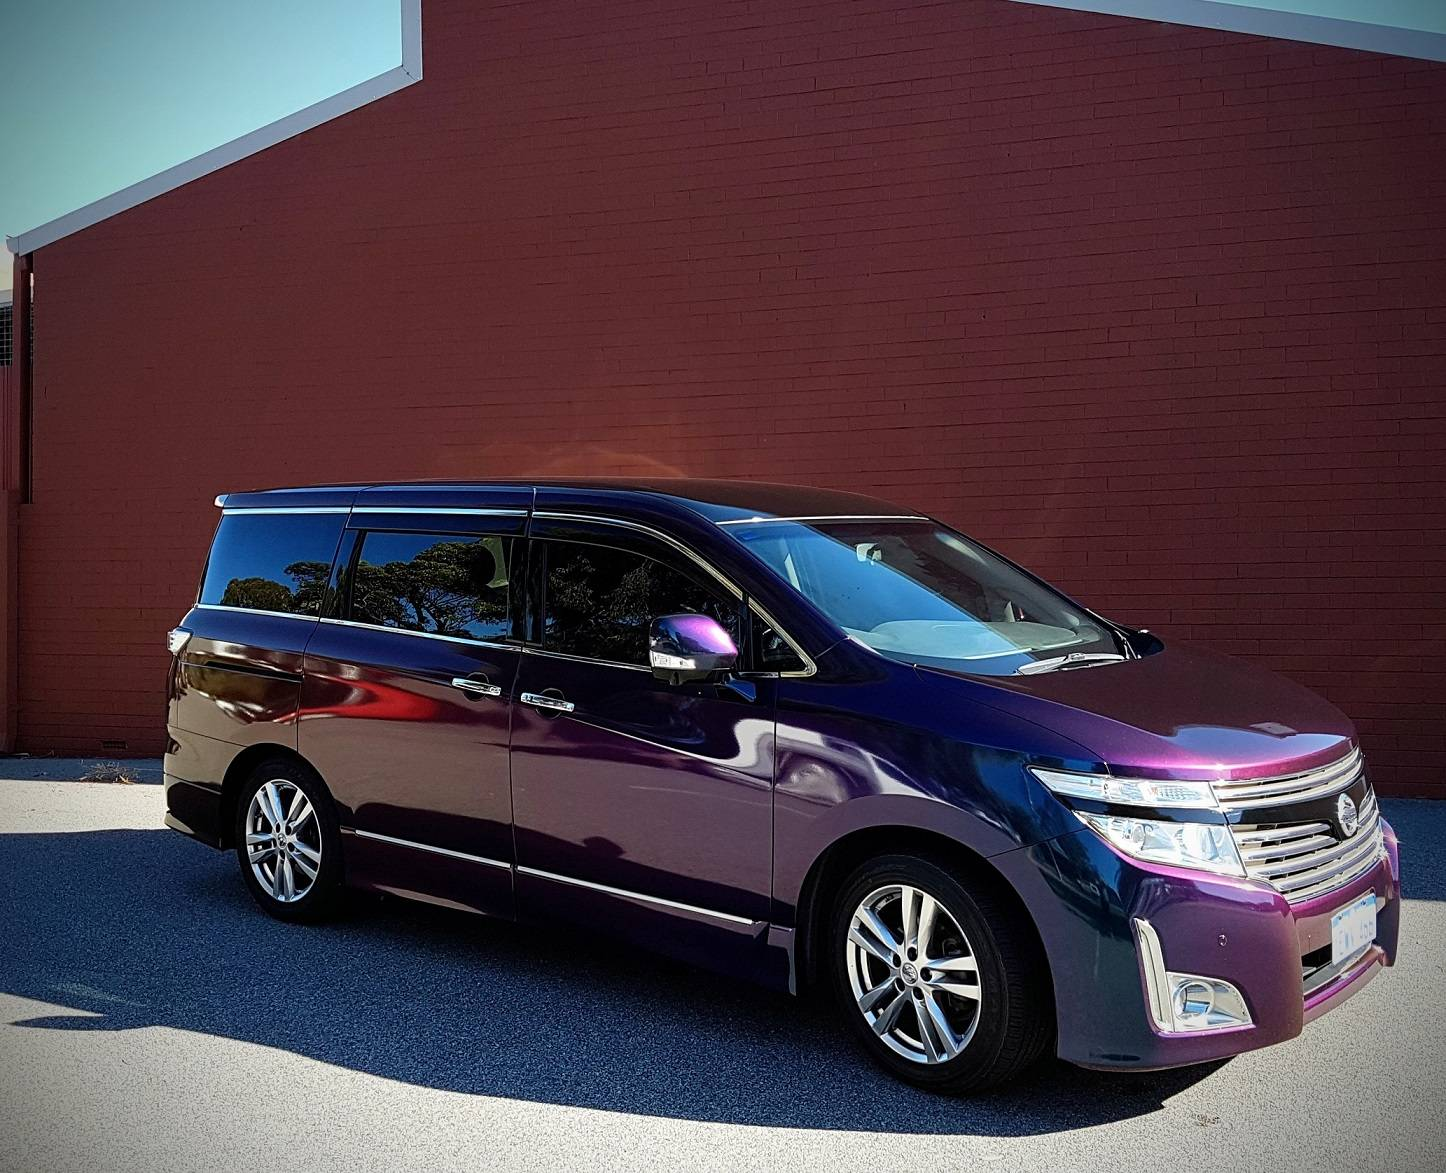 Nissan Elgrand wrapped in 3M 1080 Gloss Colour Flip